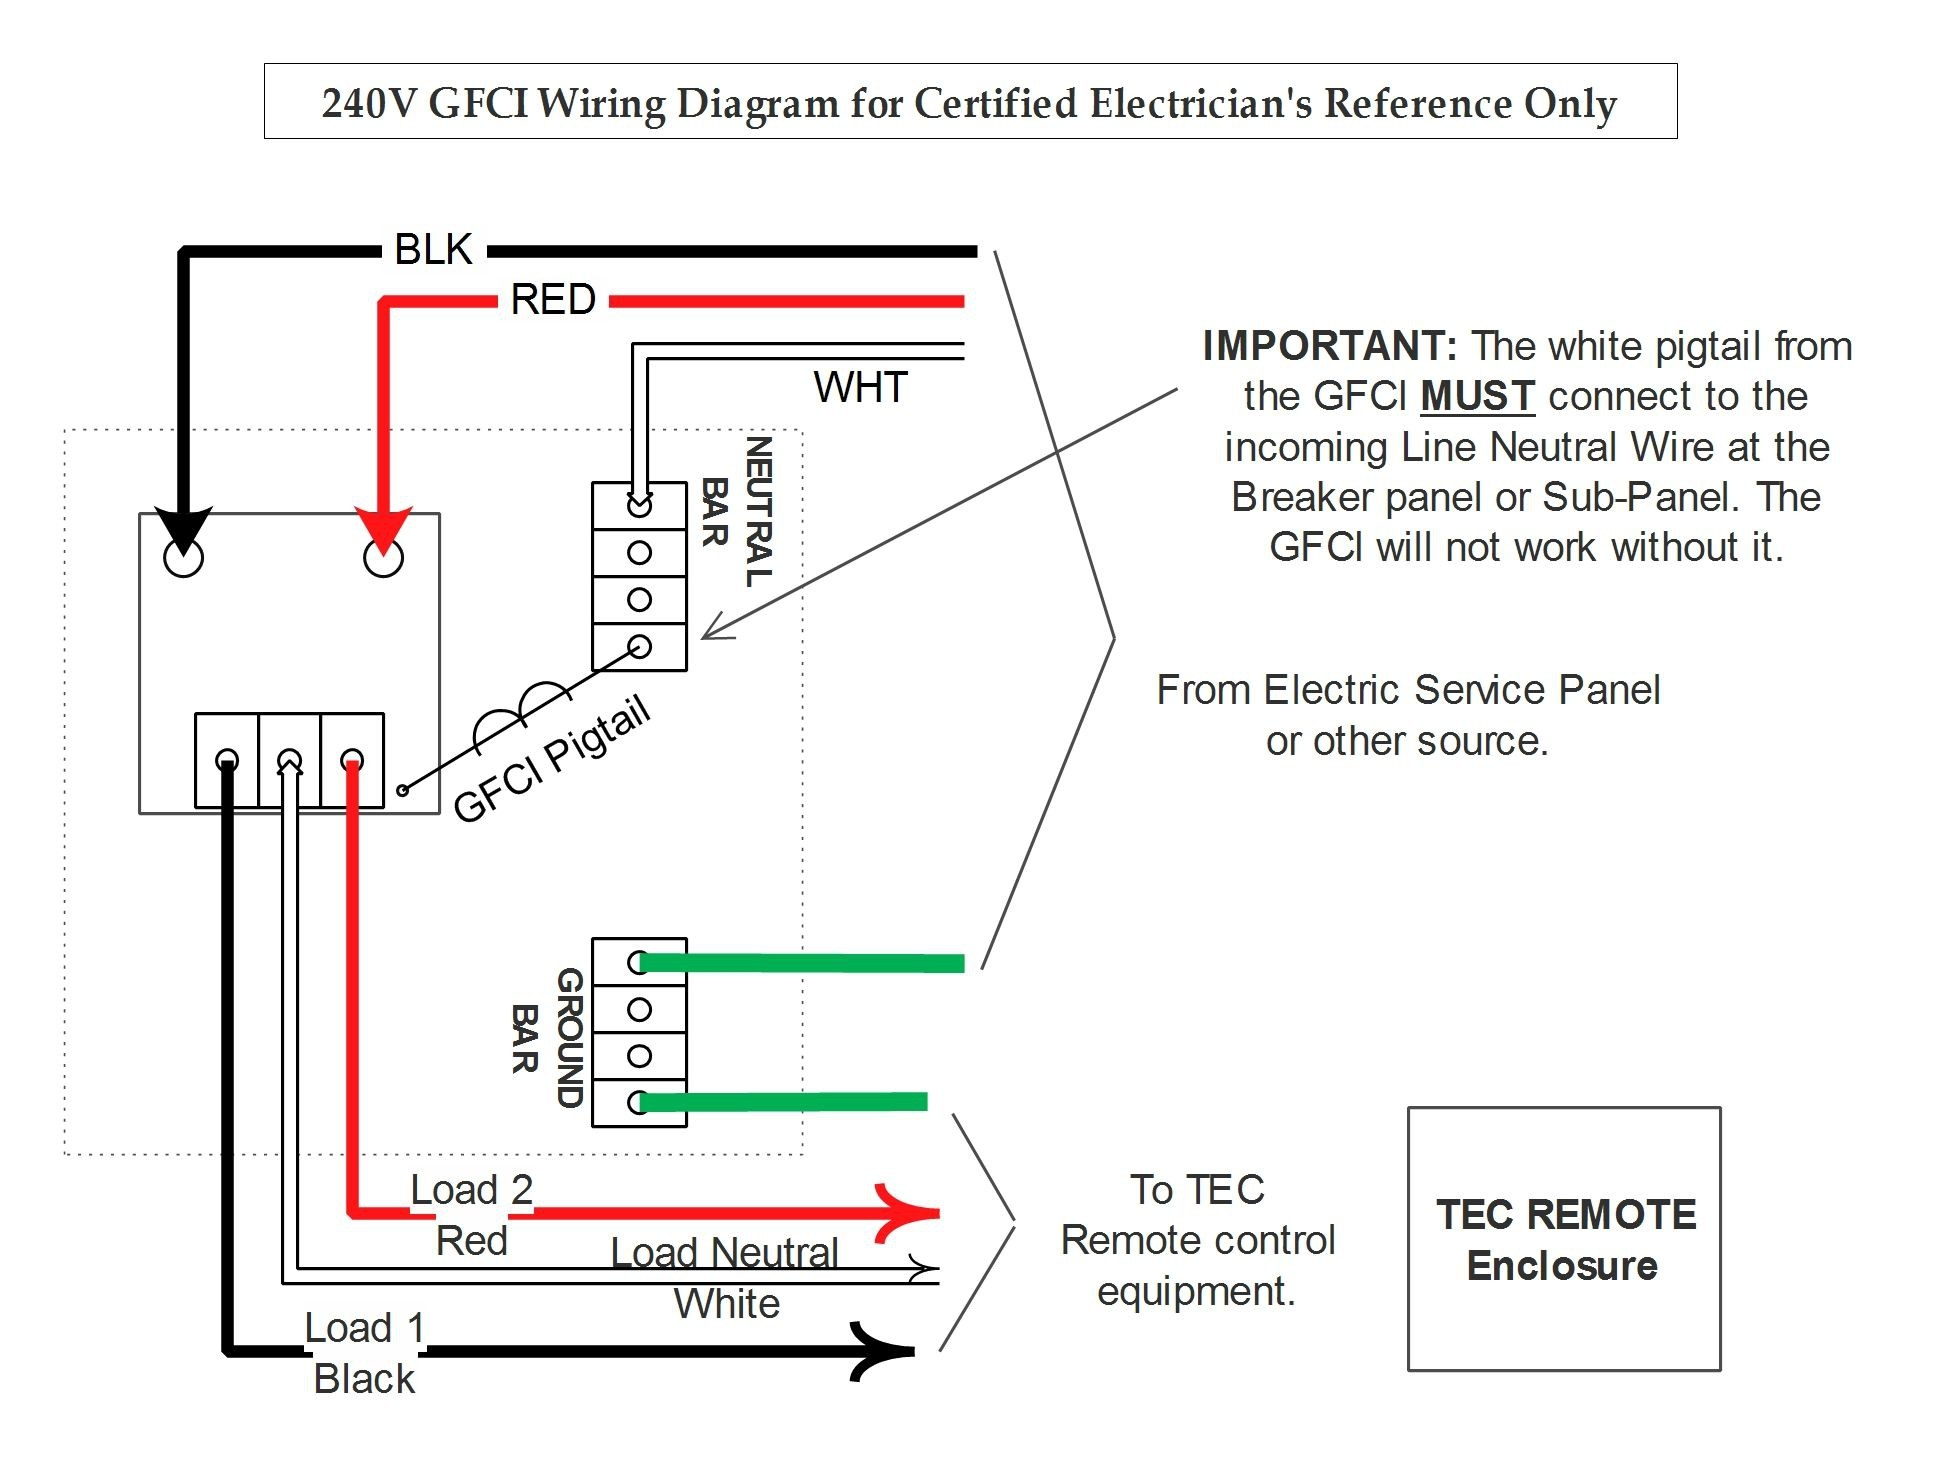 farmall h wiring diagram 6 volt farmall h 12 volt conversion wiring diagram | free wiring ... #11